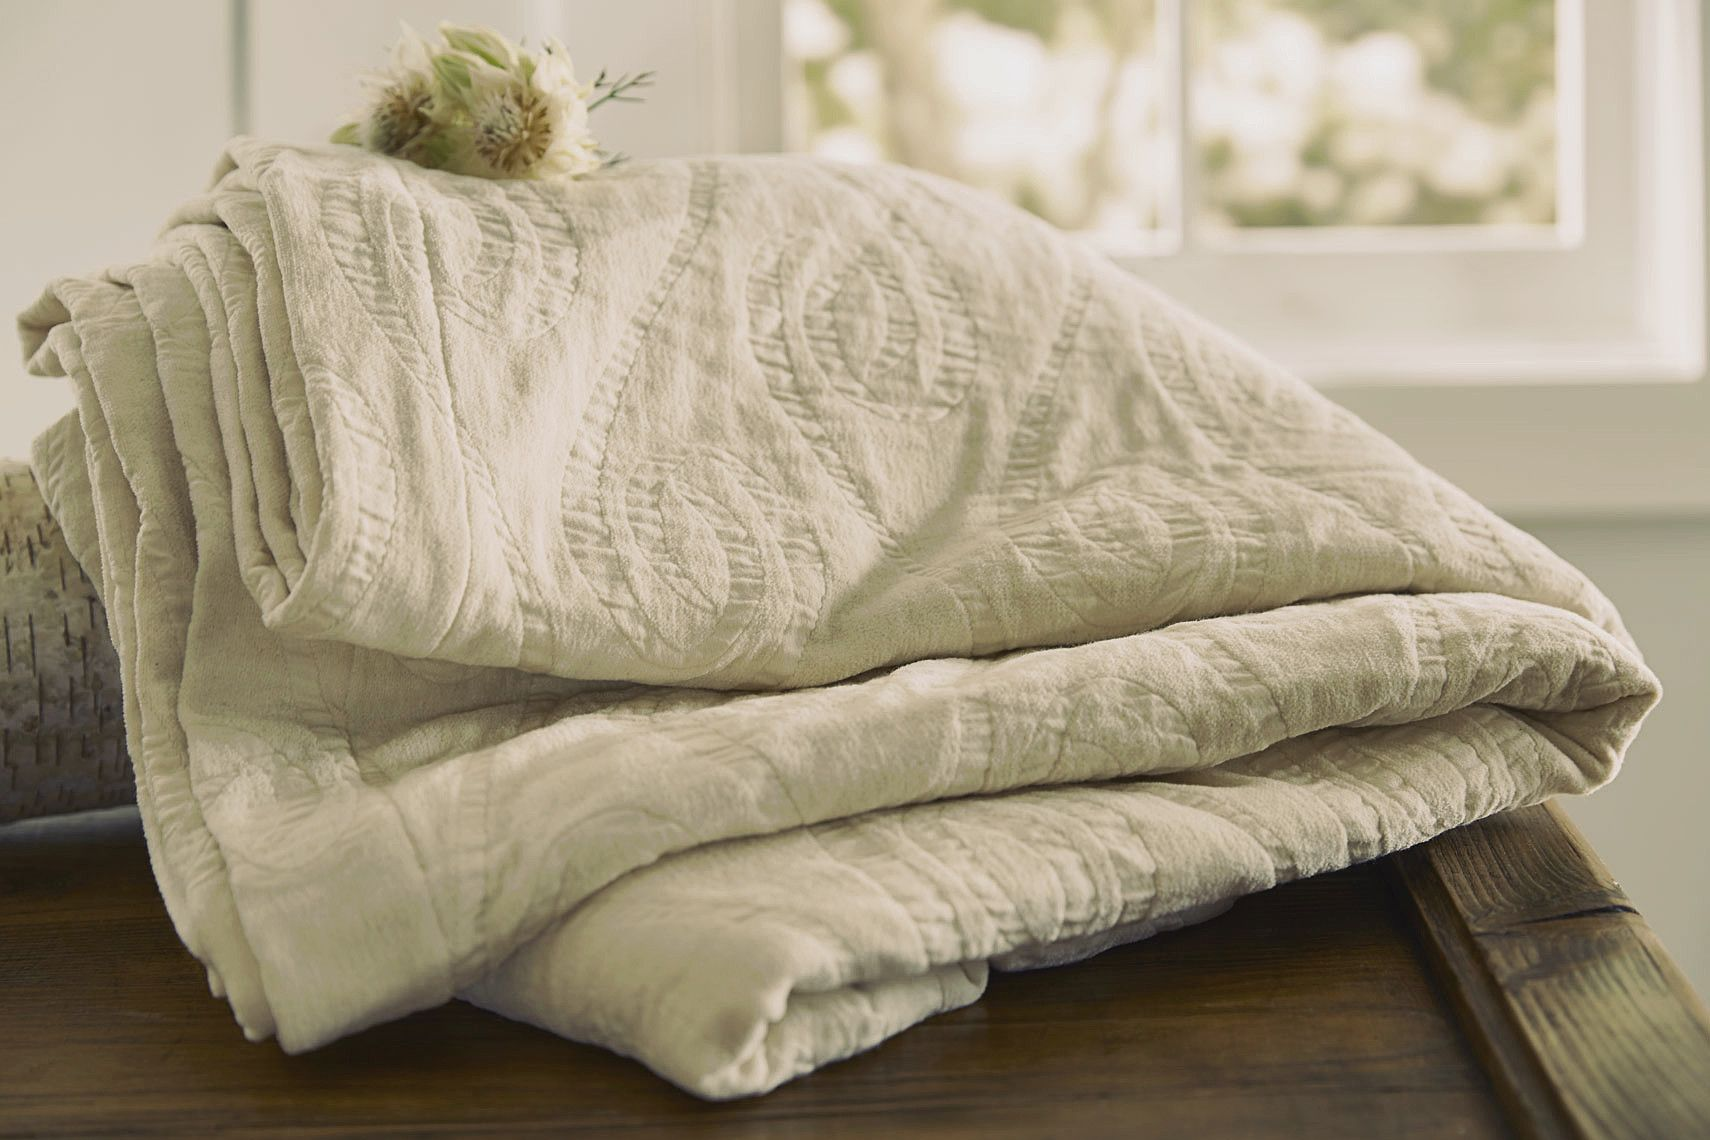 The Purists Bedding Adlon - woven from 100% Egyptian Cotton.